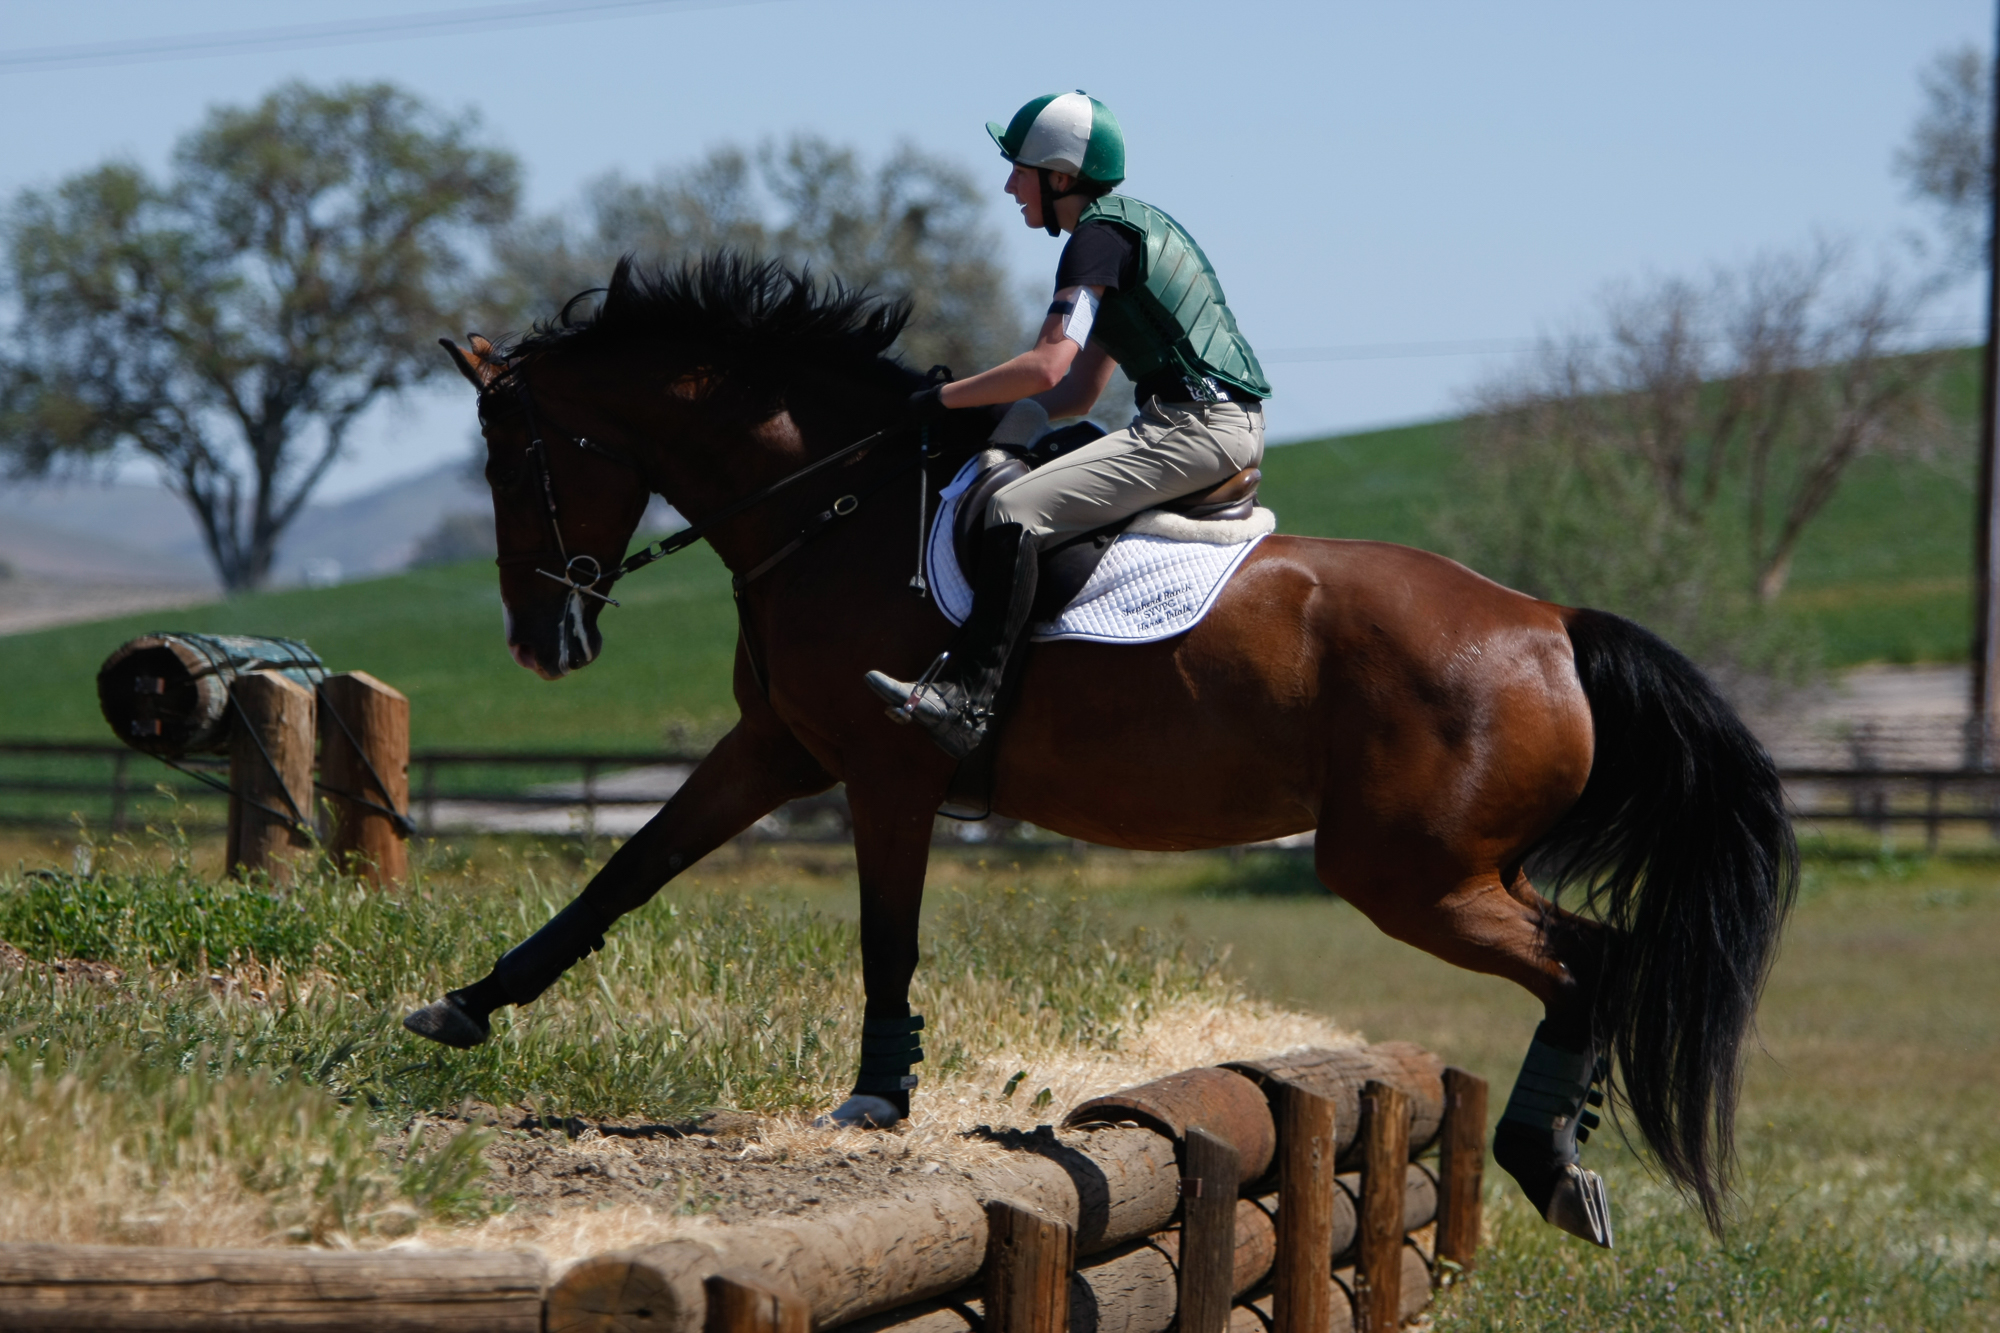 Learning to shoot equestrian sports